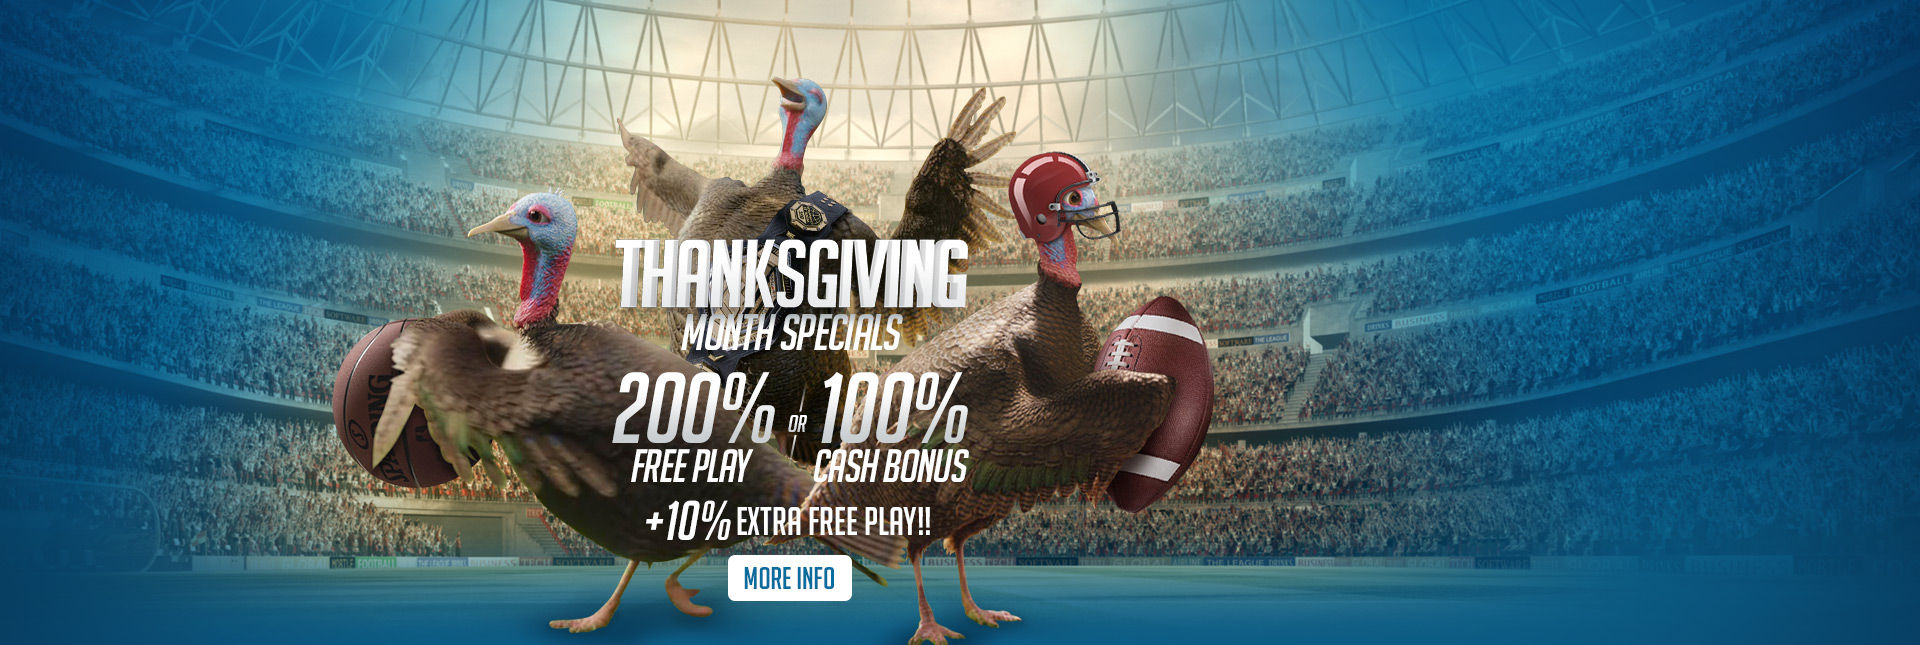 Thanksgiving Month Specials